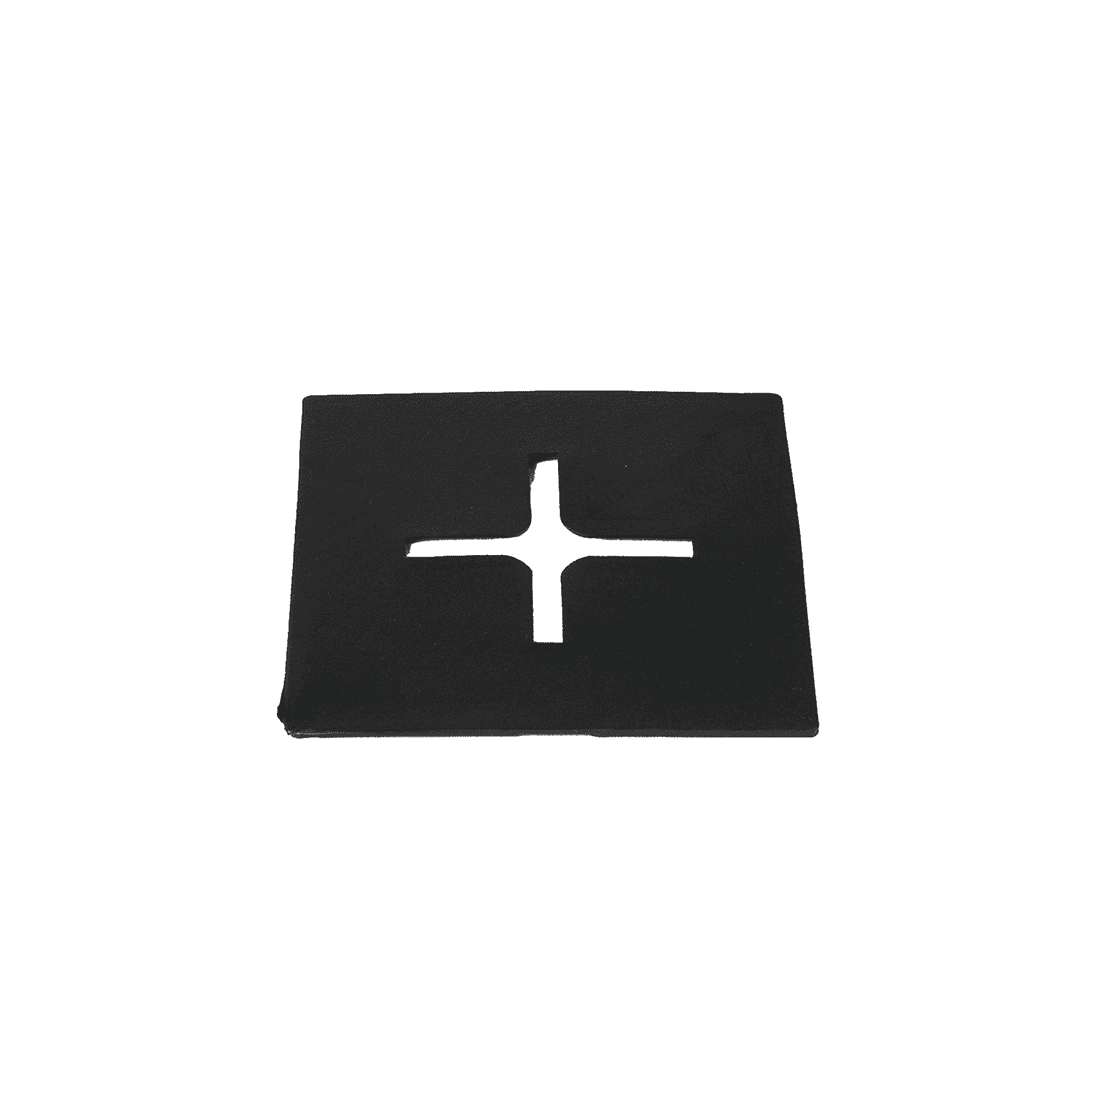 Sika Levelling Shim / Paving support Pad